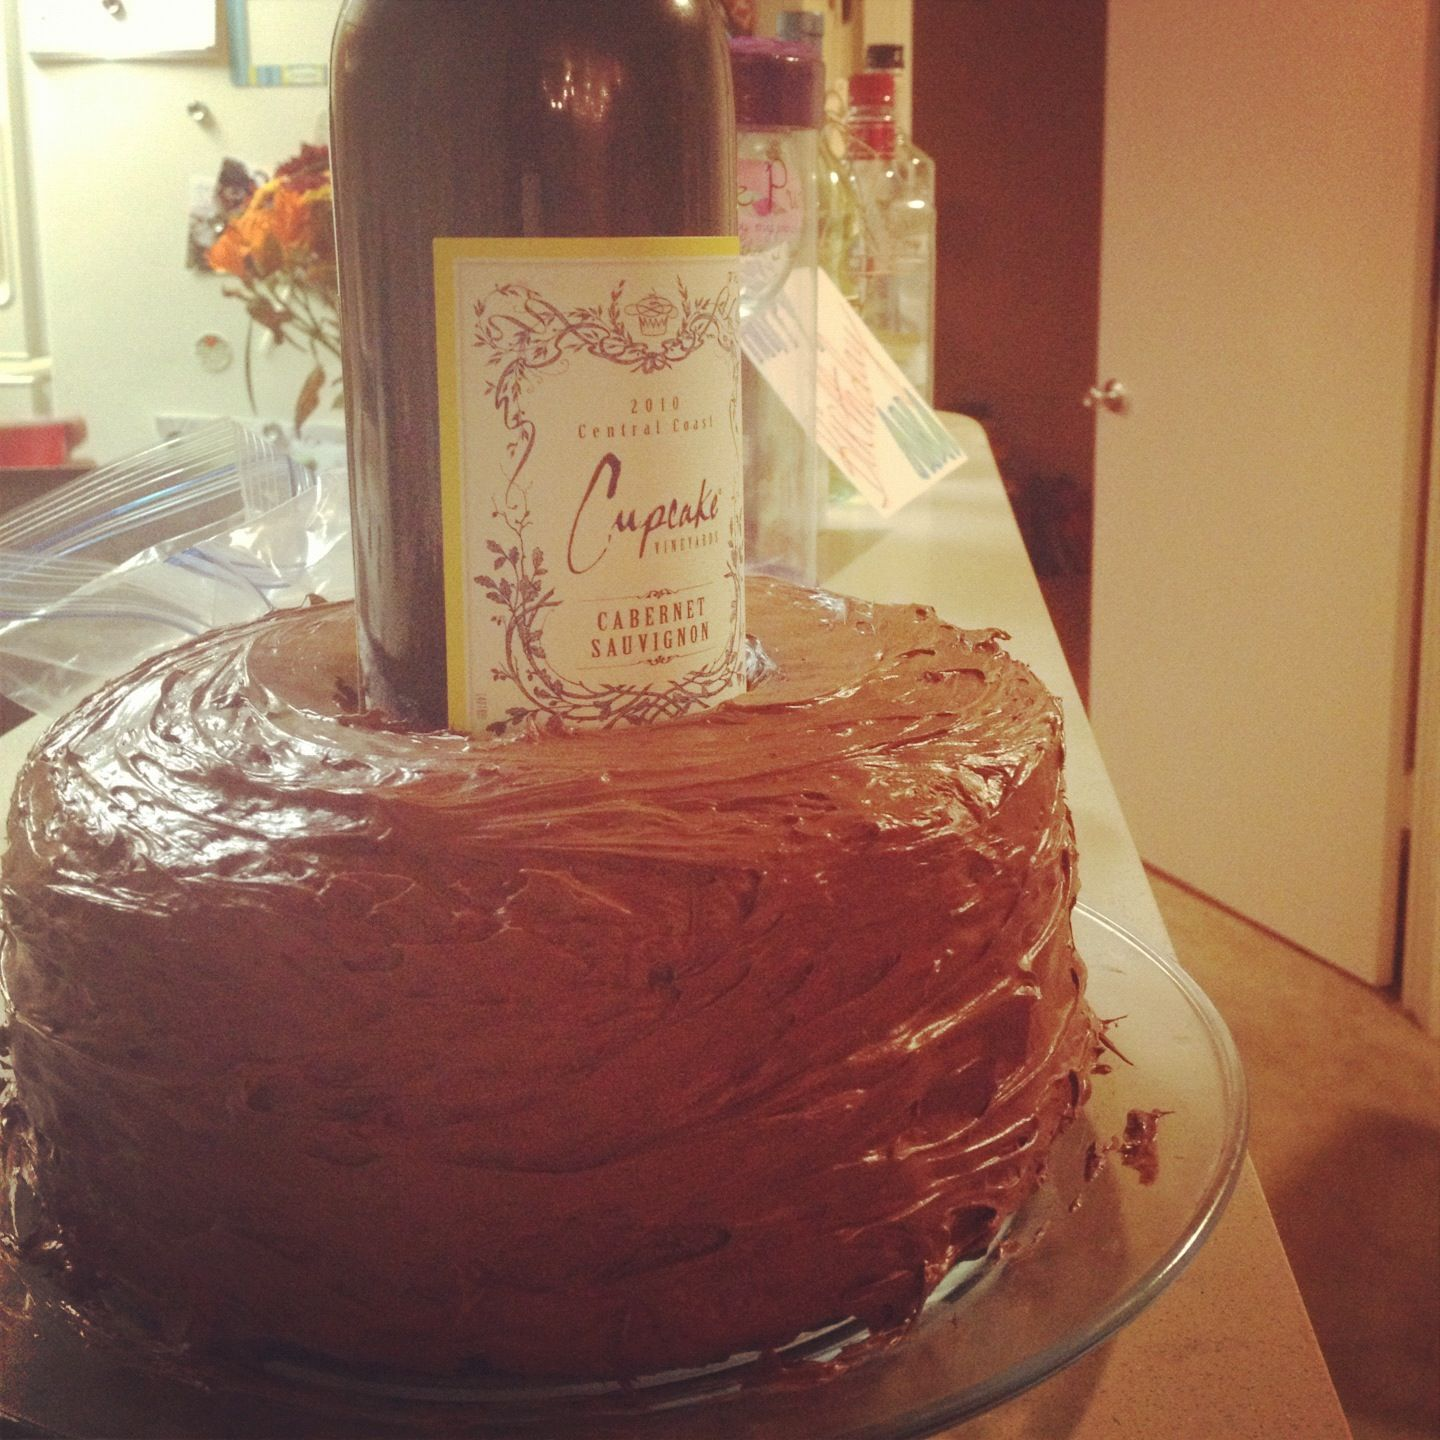 My Best Friend Loves Wine So I Baked Her A Cake And Put A Wine Bottle In The Middle For Her Birthday Baking Cake Desserts